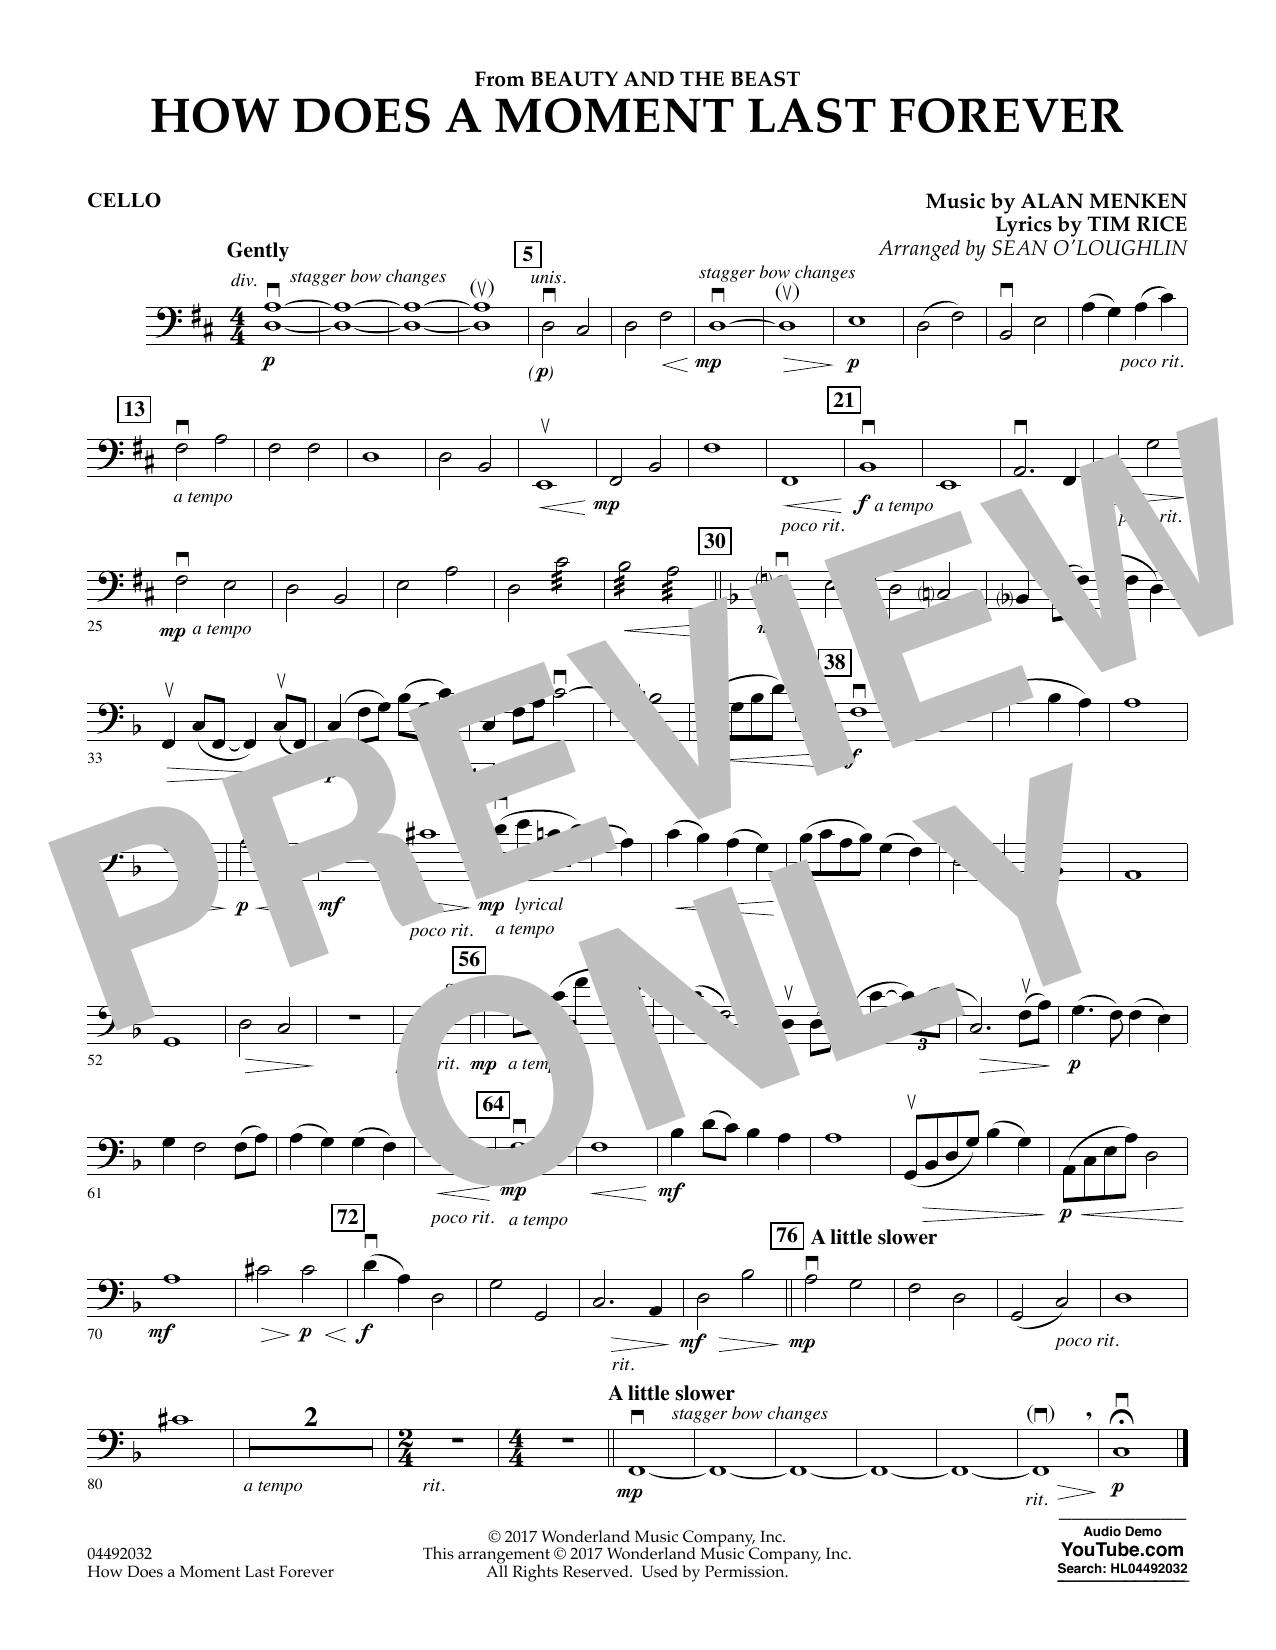 Sean O Loughlin How Does A Moment Last Forever From Beauty And The Beast Cello Sheet Music Download Pdf Score 371156